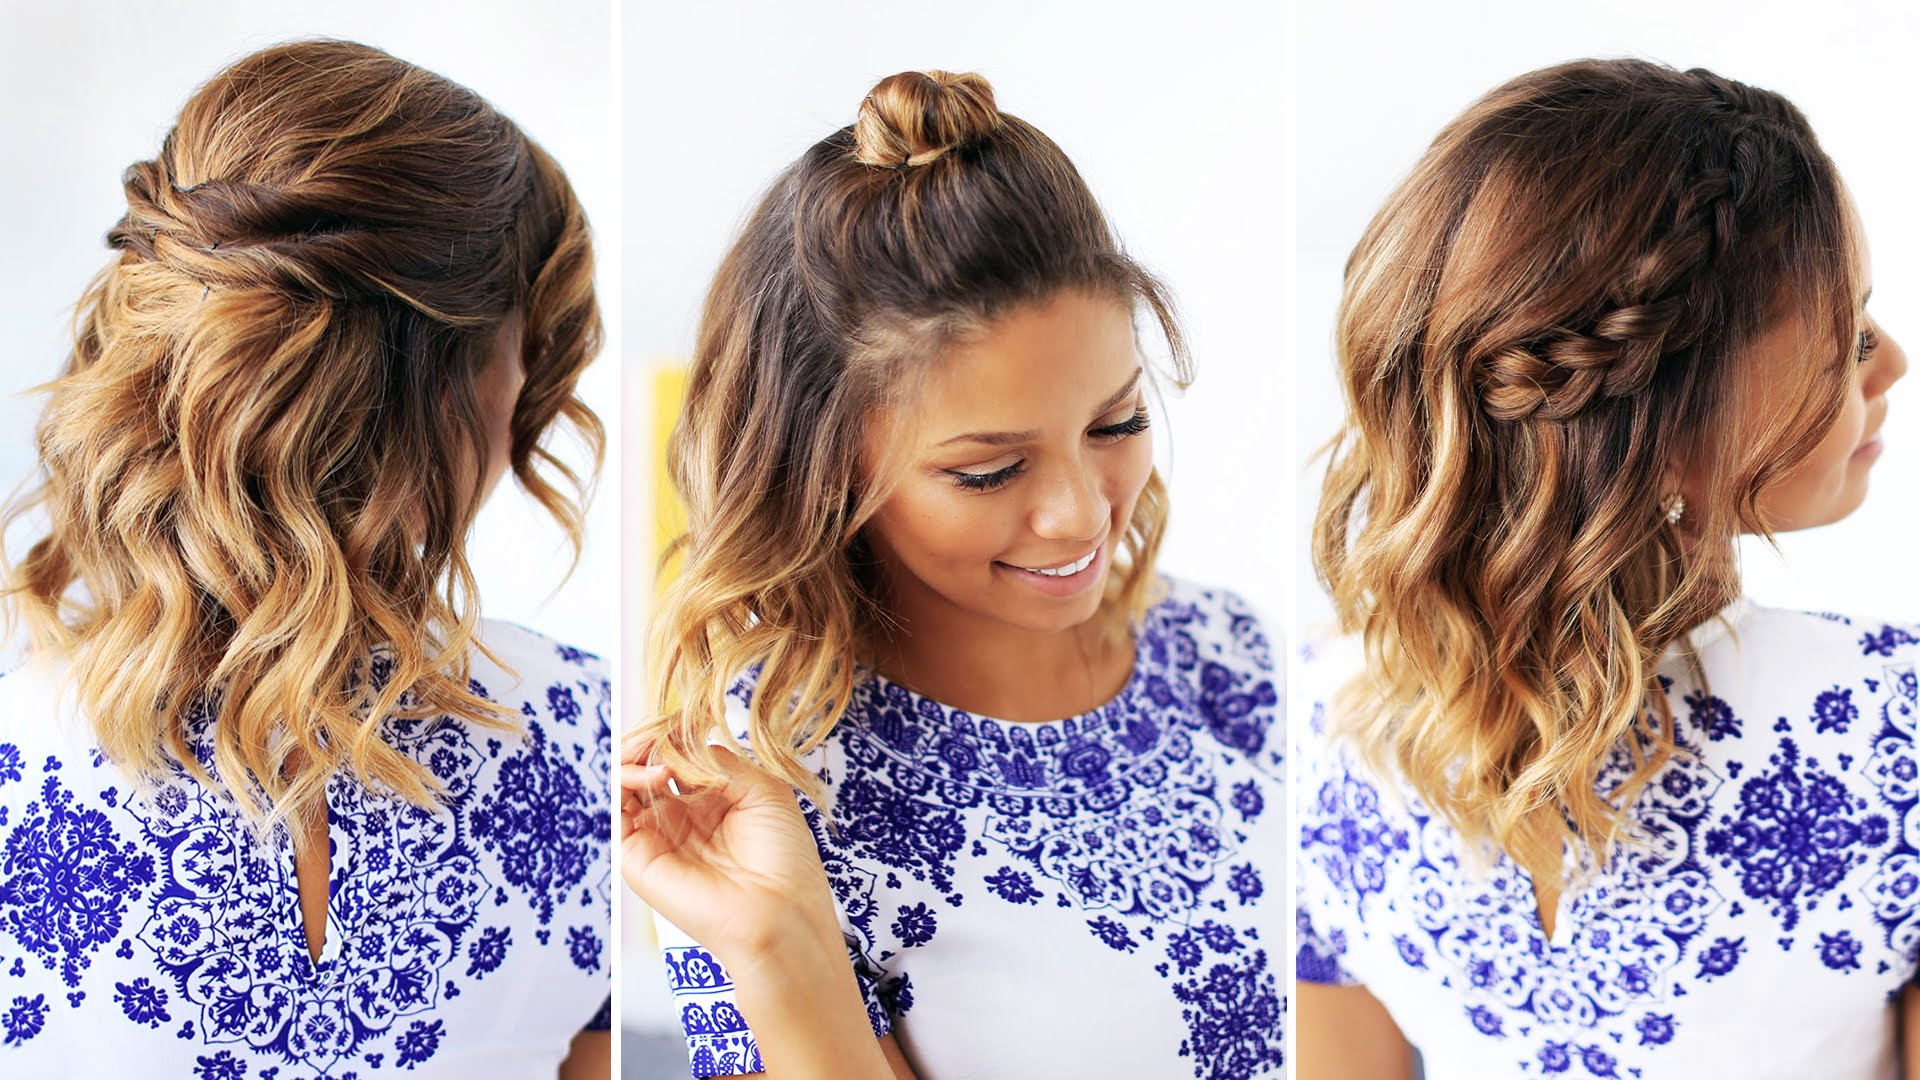 Hairstyles which can be done within 5 minutes